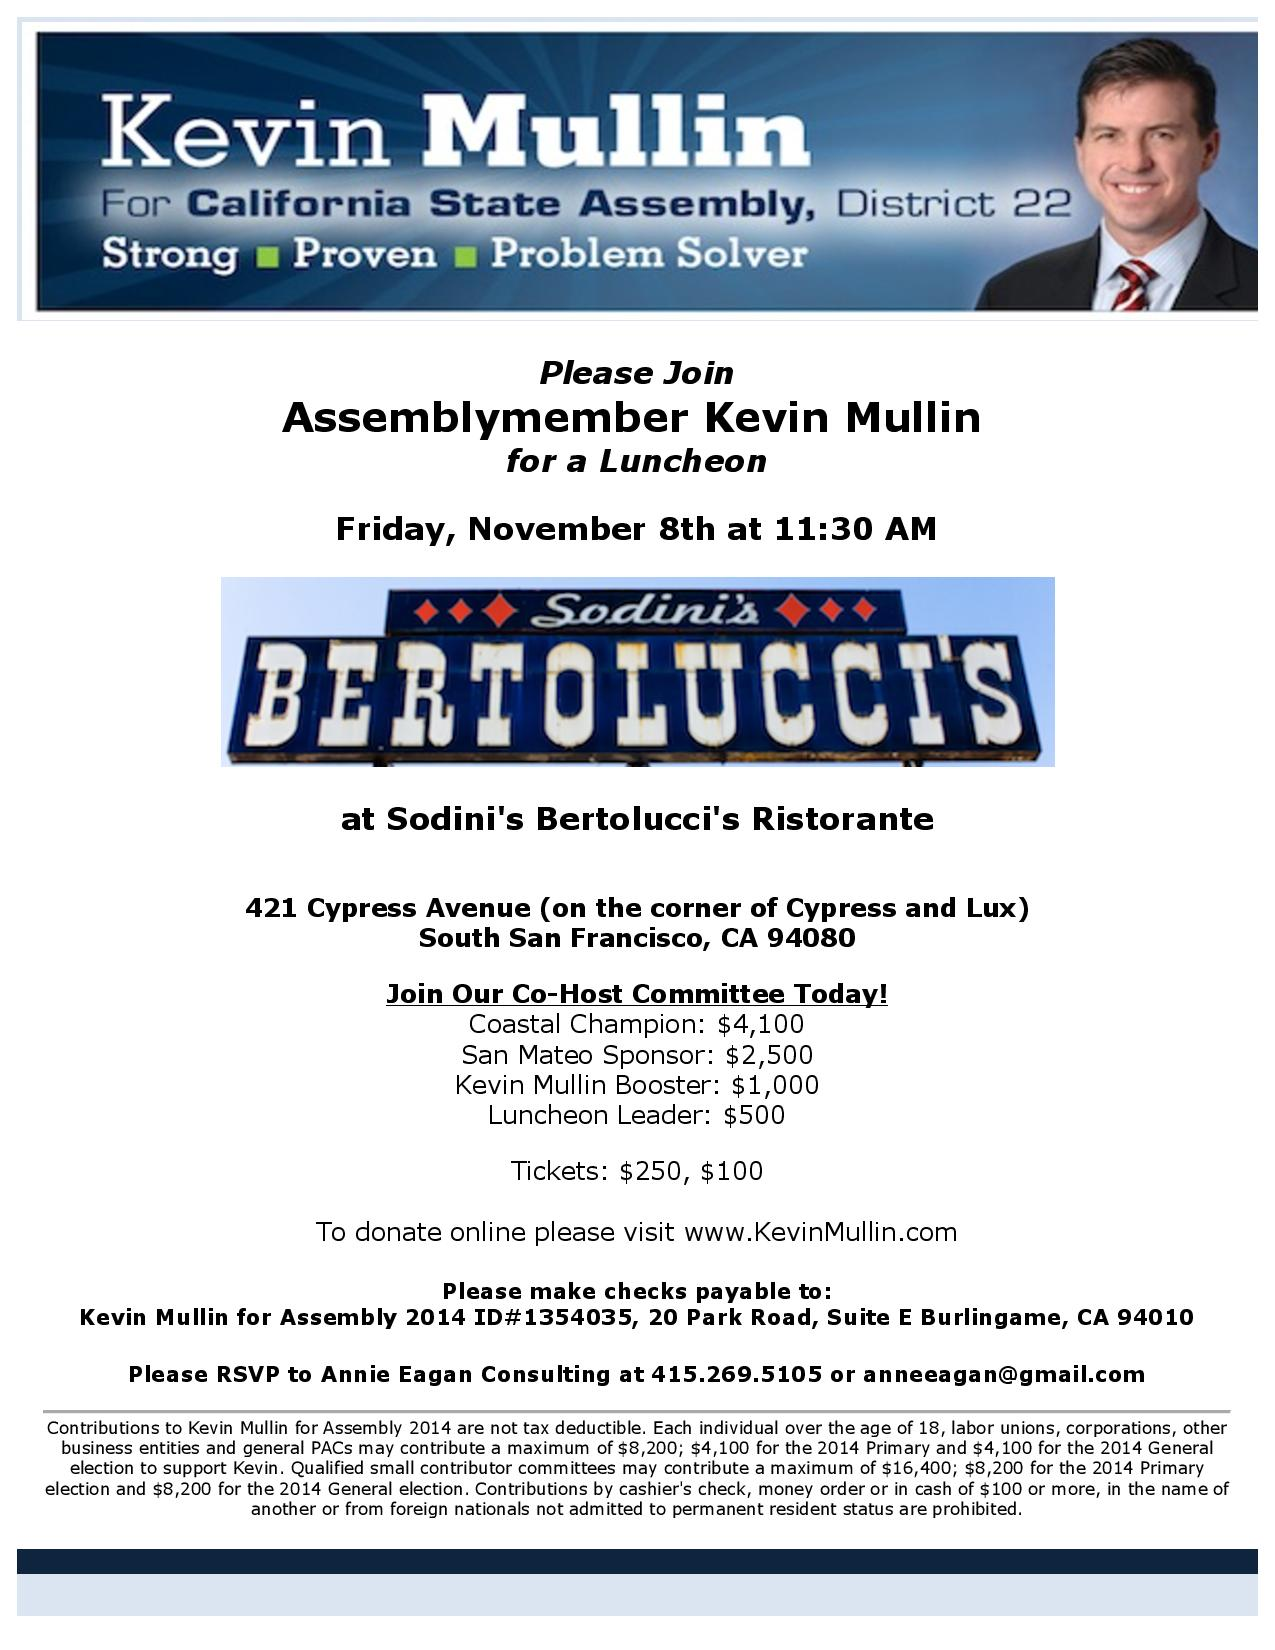 Kevin Mullin Re-Election Fundraiser At Bertolucci's